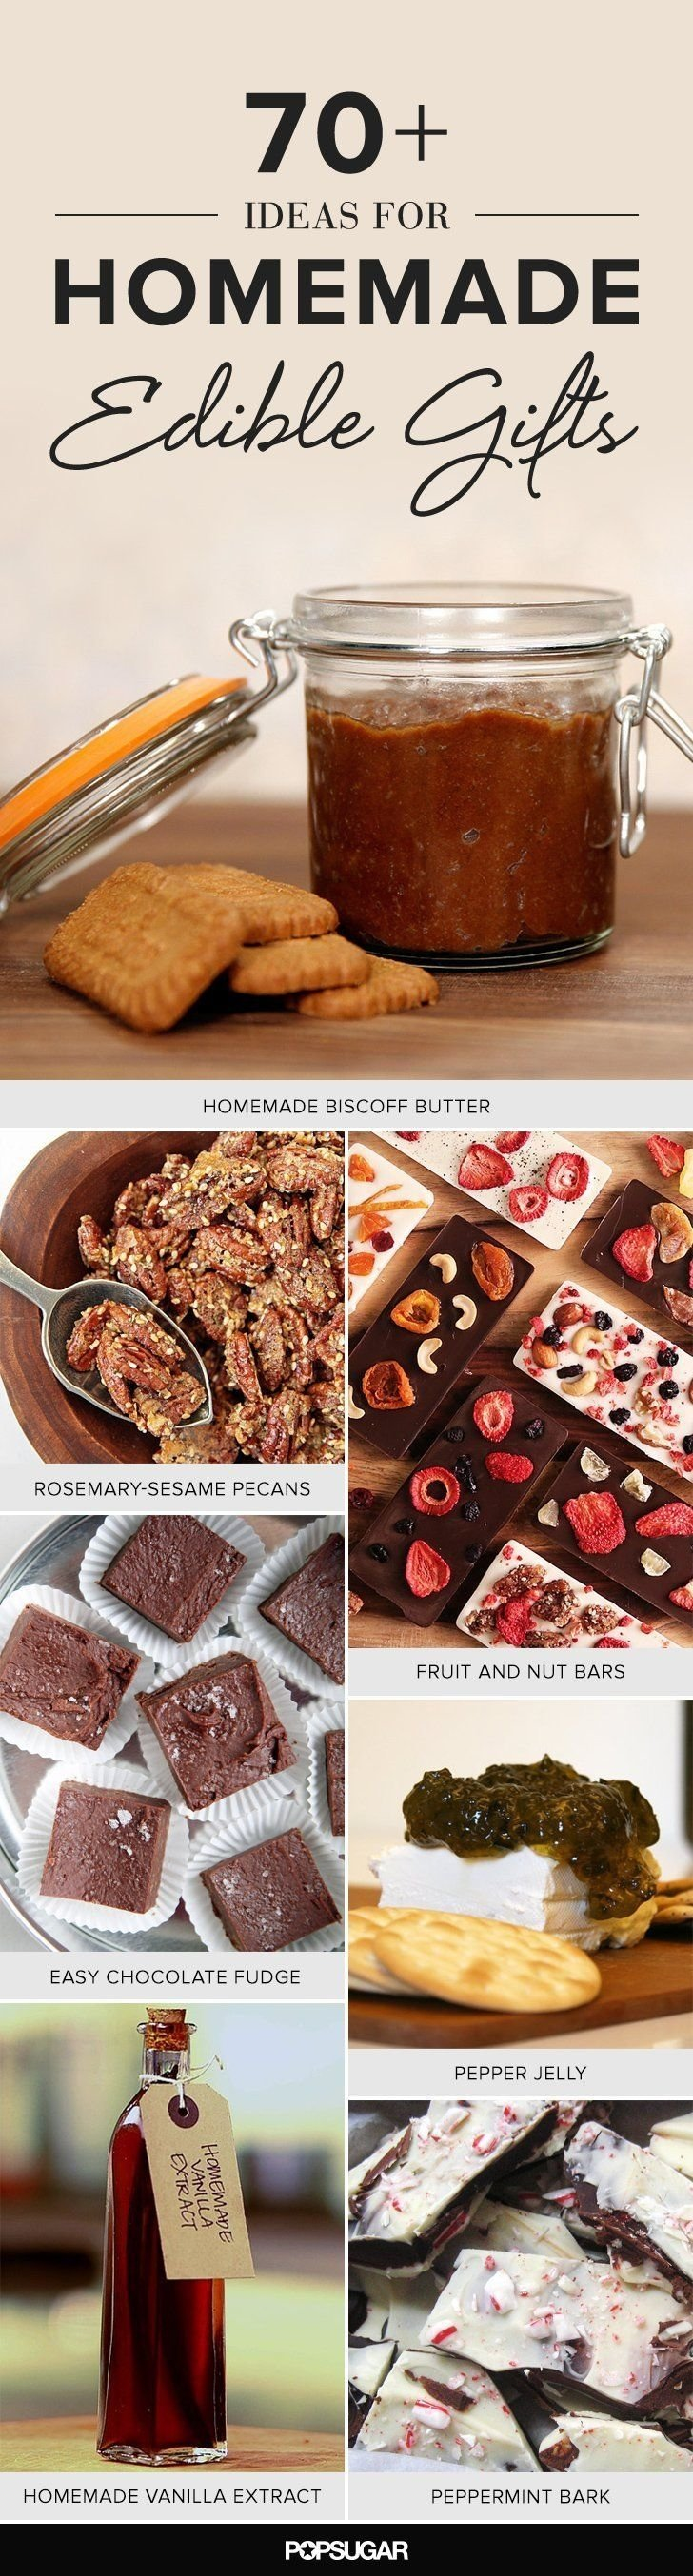 10 Famous Homemade Edible Christmas Gift Ideas 19 homemade food gifts that you can actually make crackers food 2021